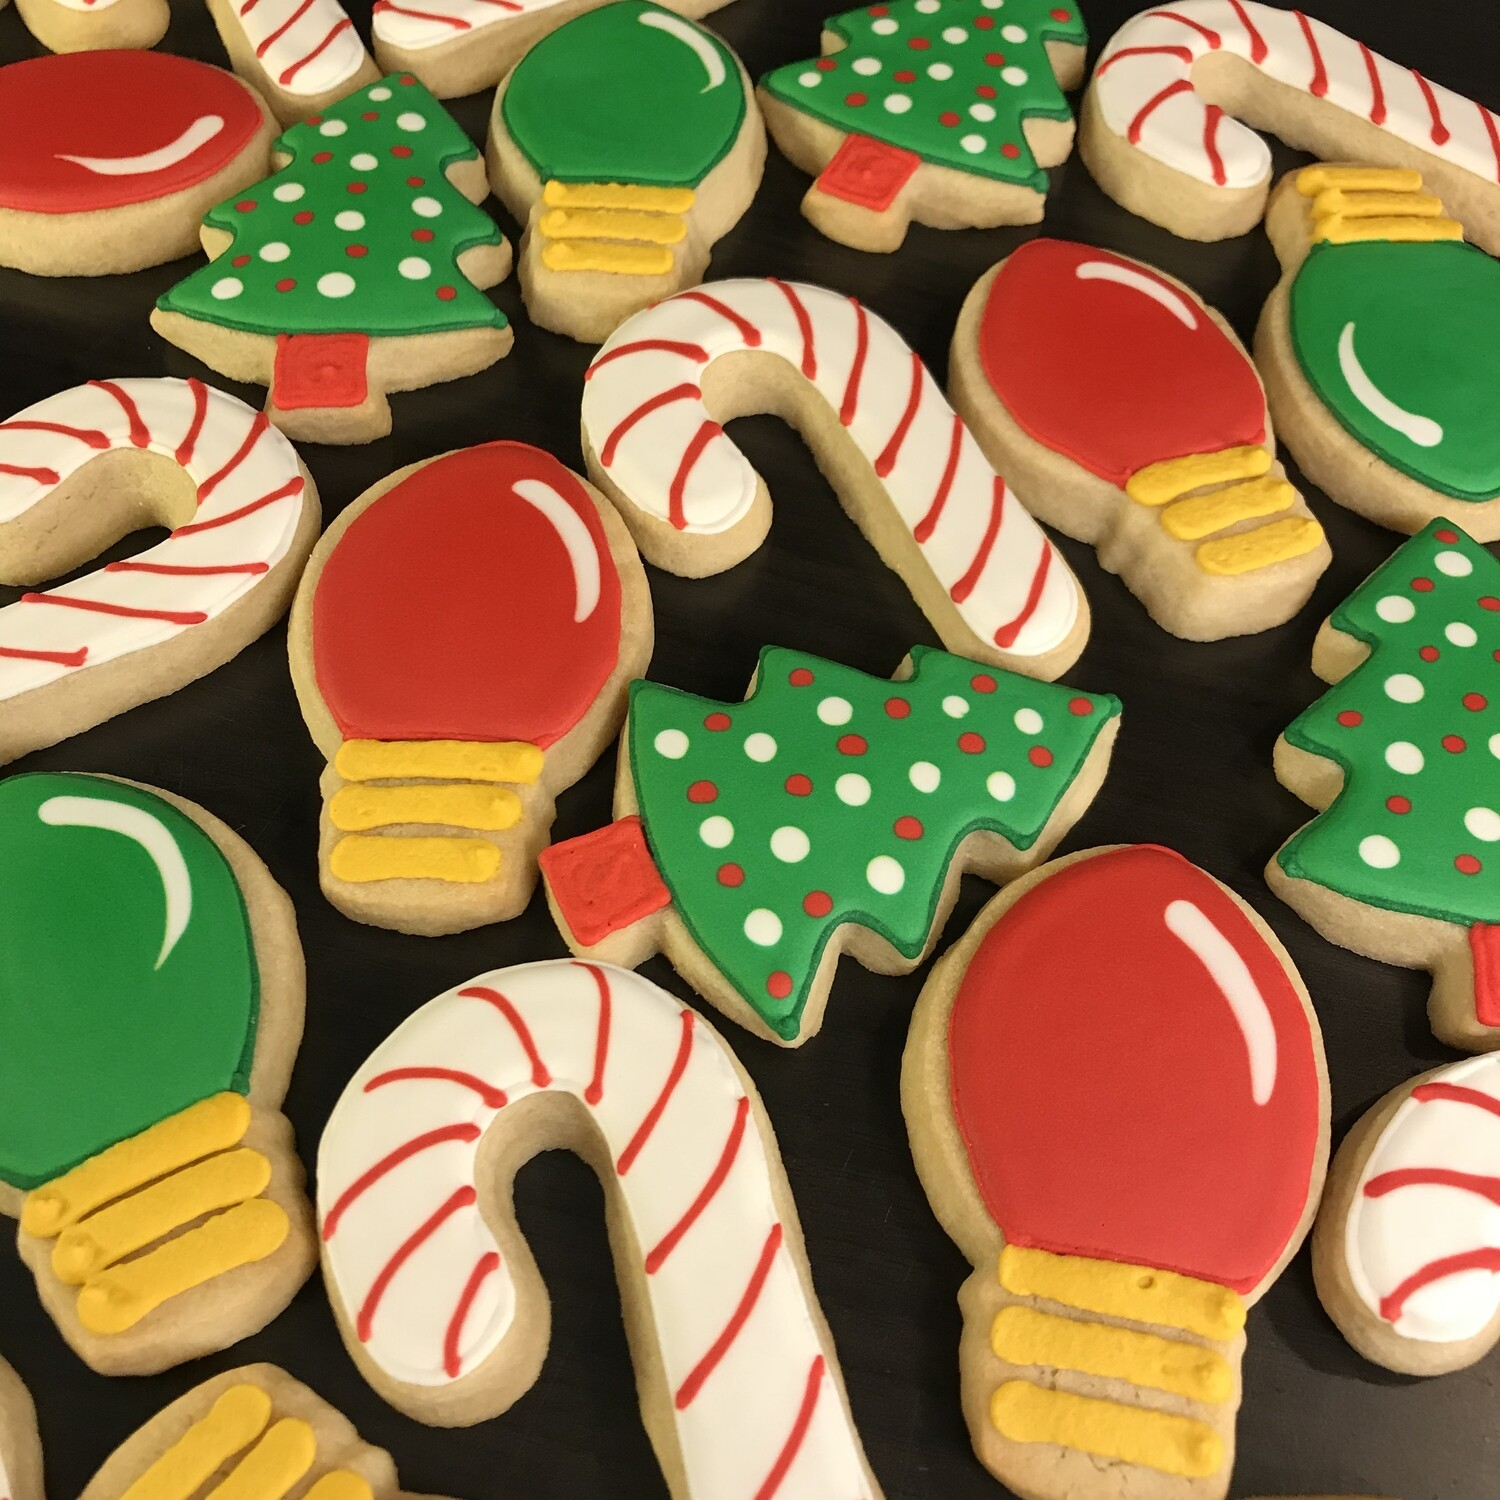 'Candy Canes Decorating Workshop - MONDAY, NOVEMBER 23rd at 2:30 p.m. (THE COOKIE DECORATING STUDIO)